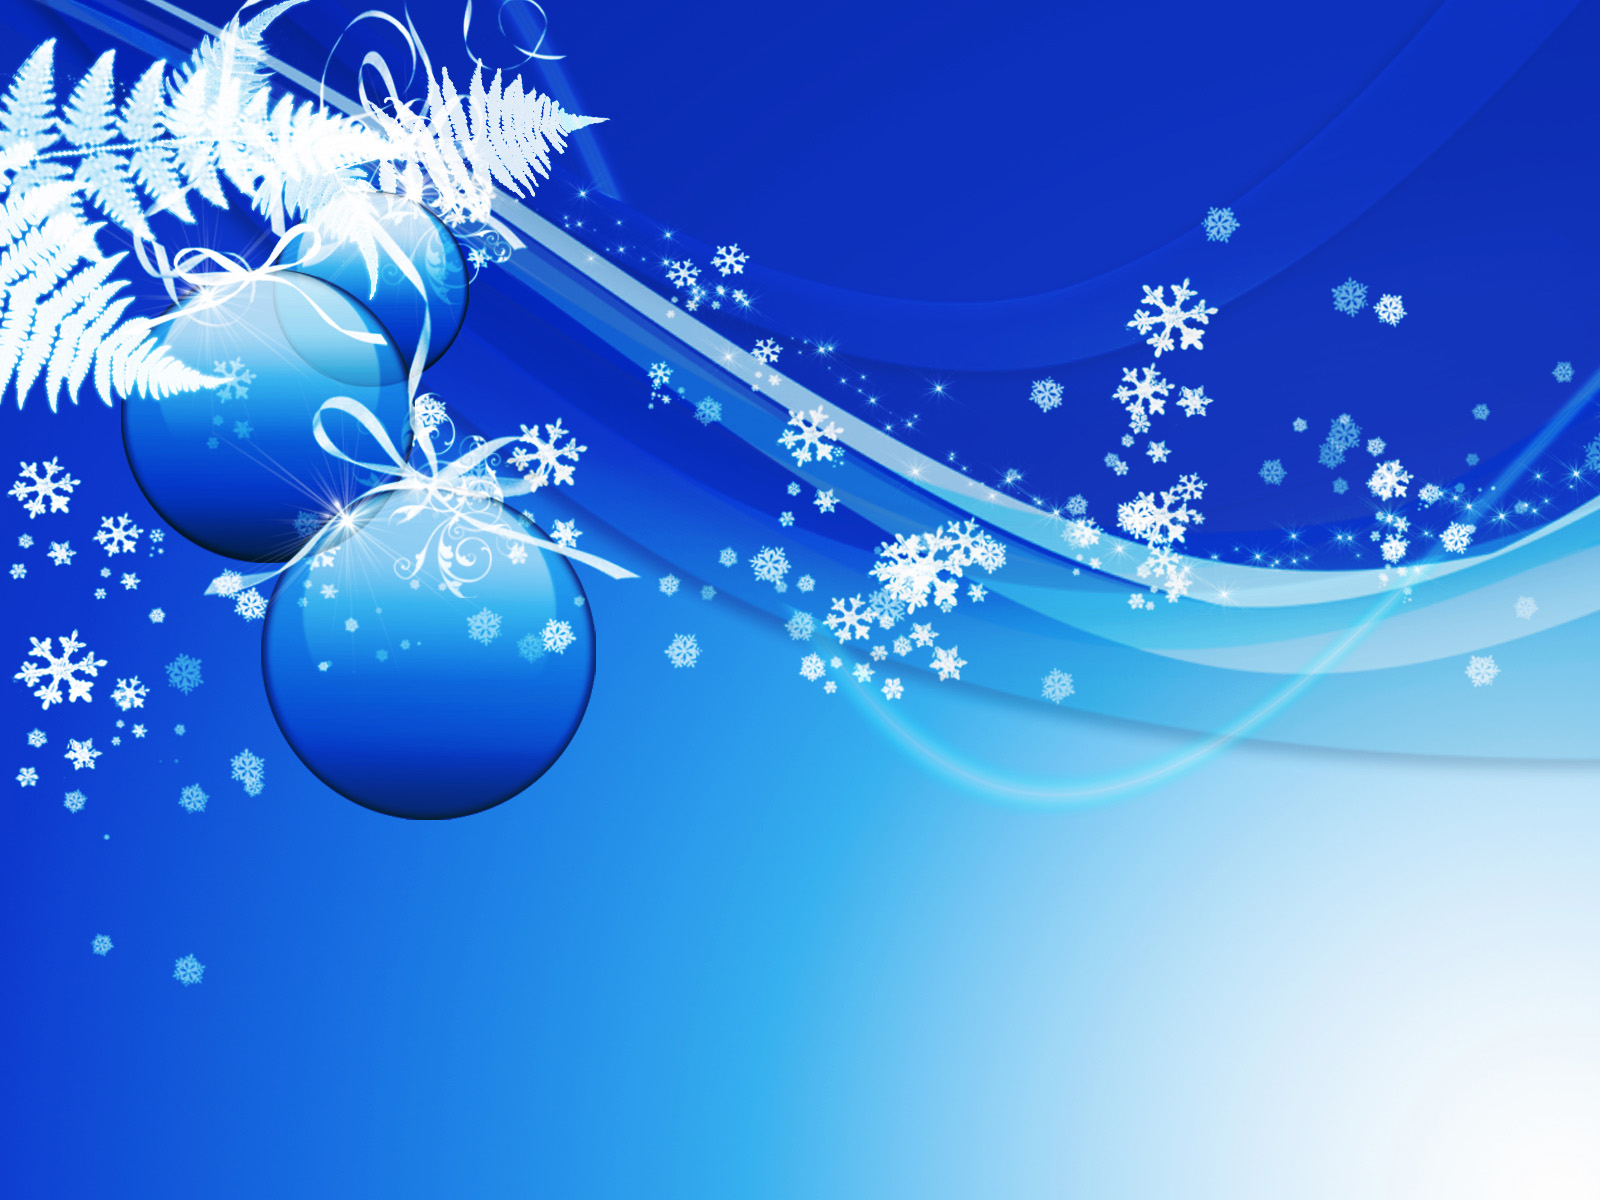 Christmas Holiday Backgrounds | Wallpapers High Definition Wallpapers ...